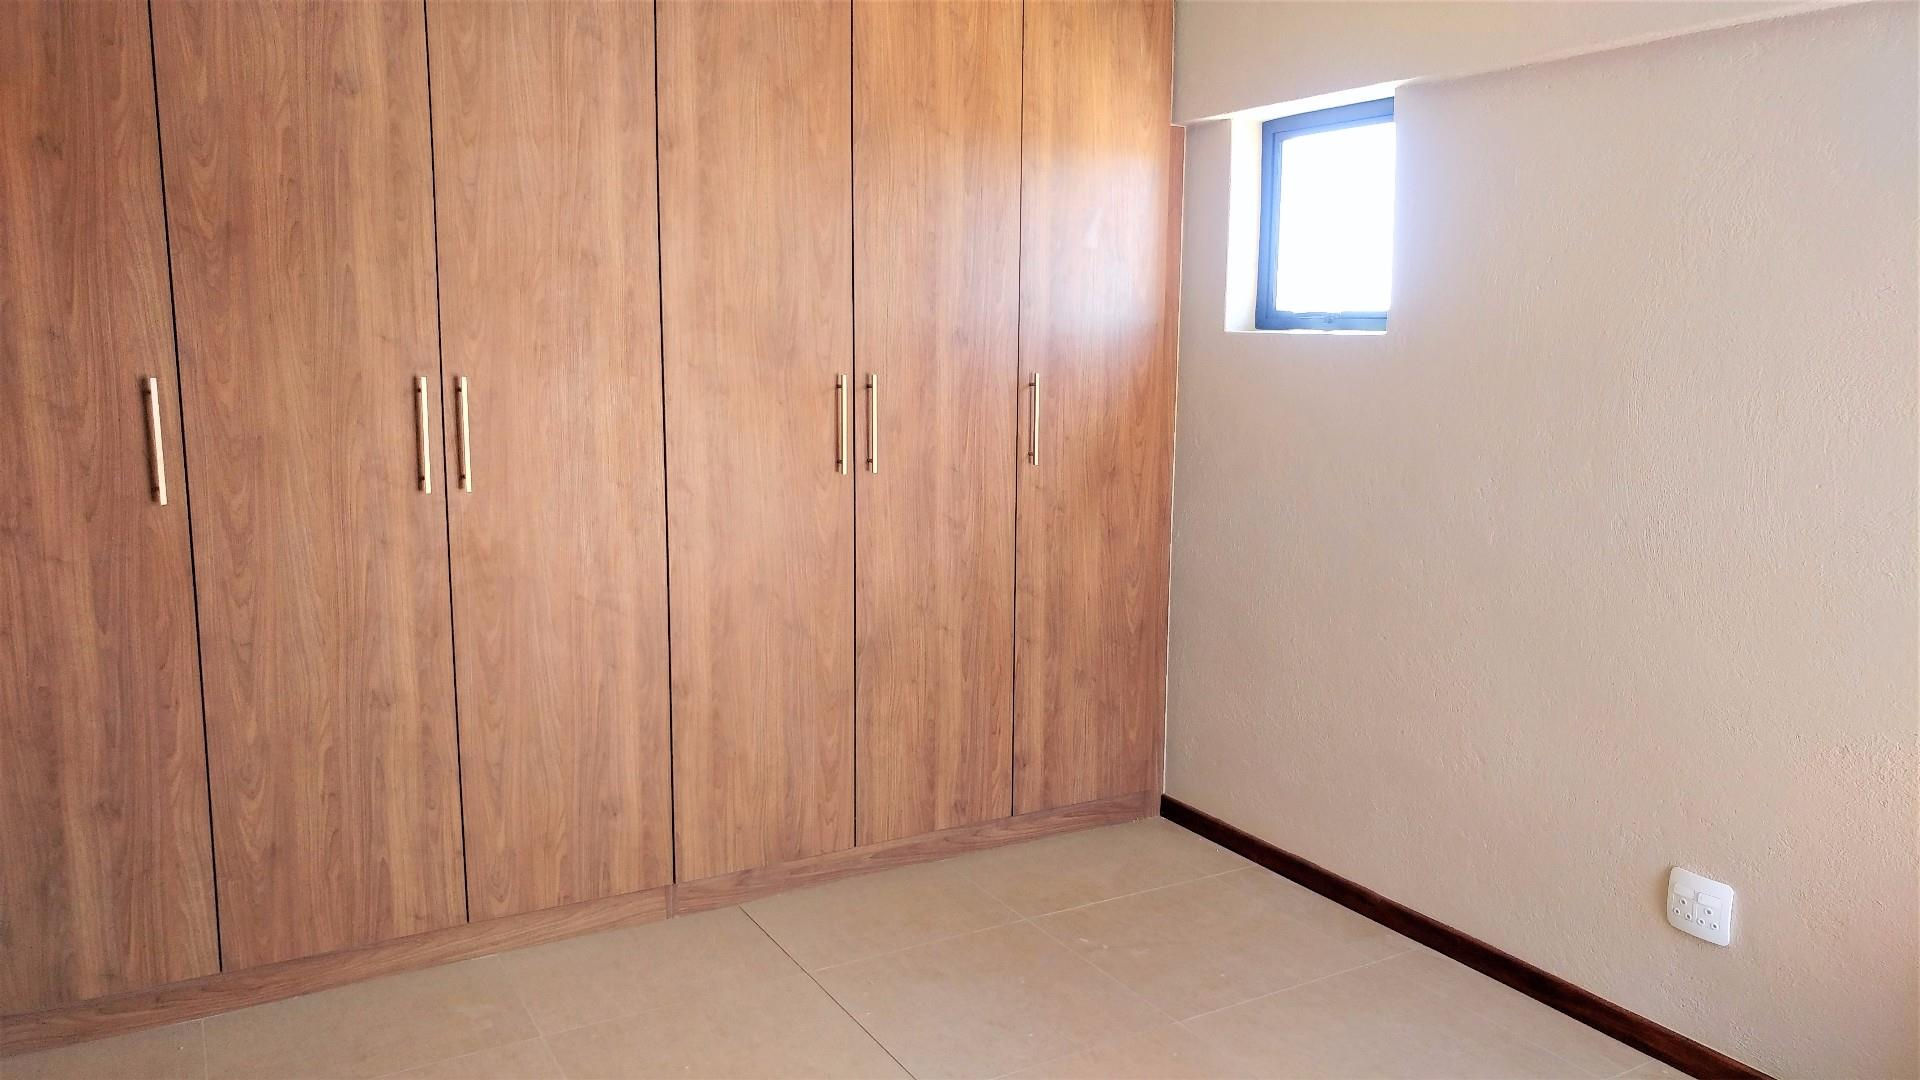 3 Bedroom House For Sale in Sonheuwel